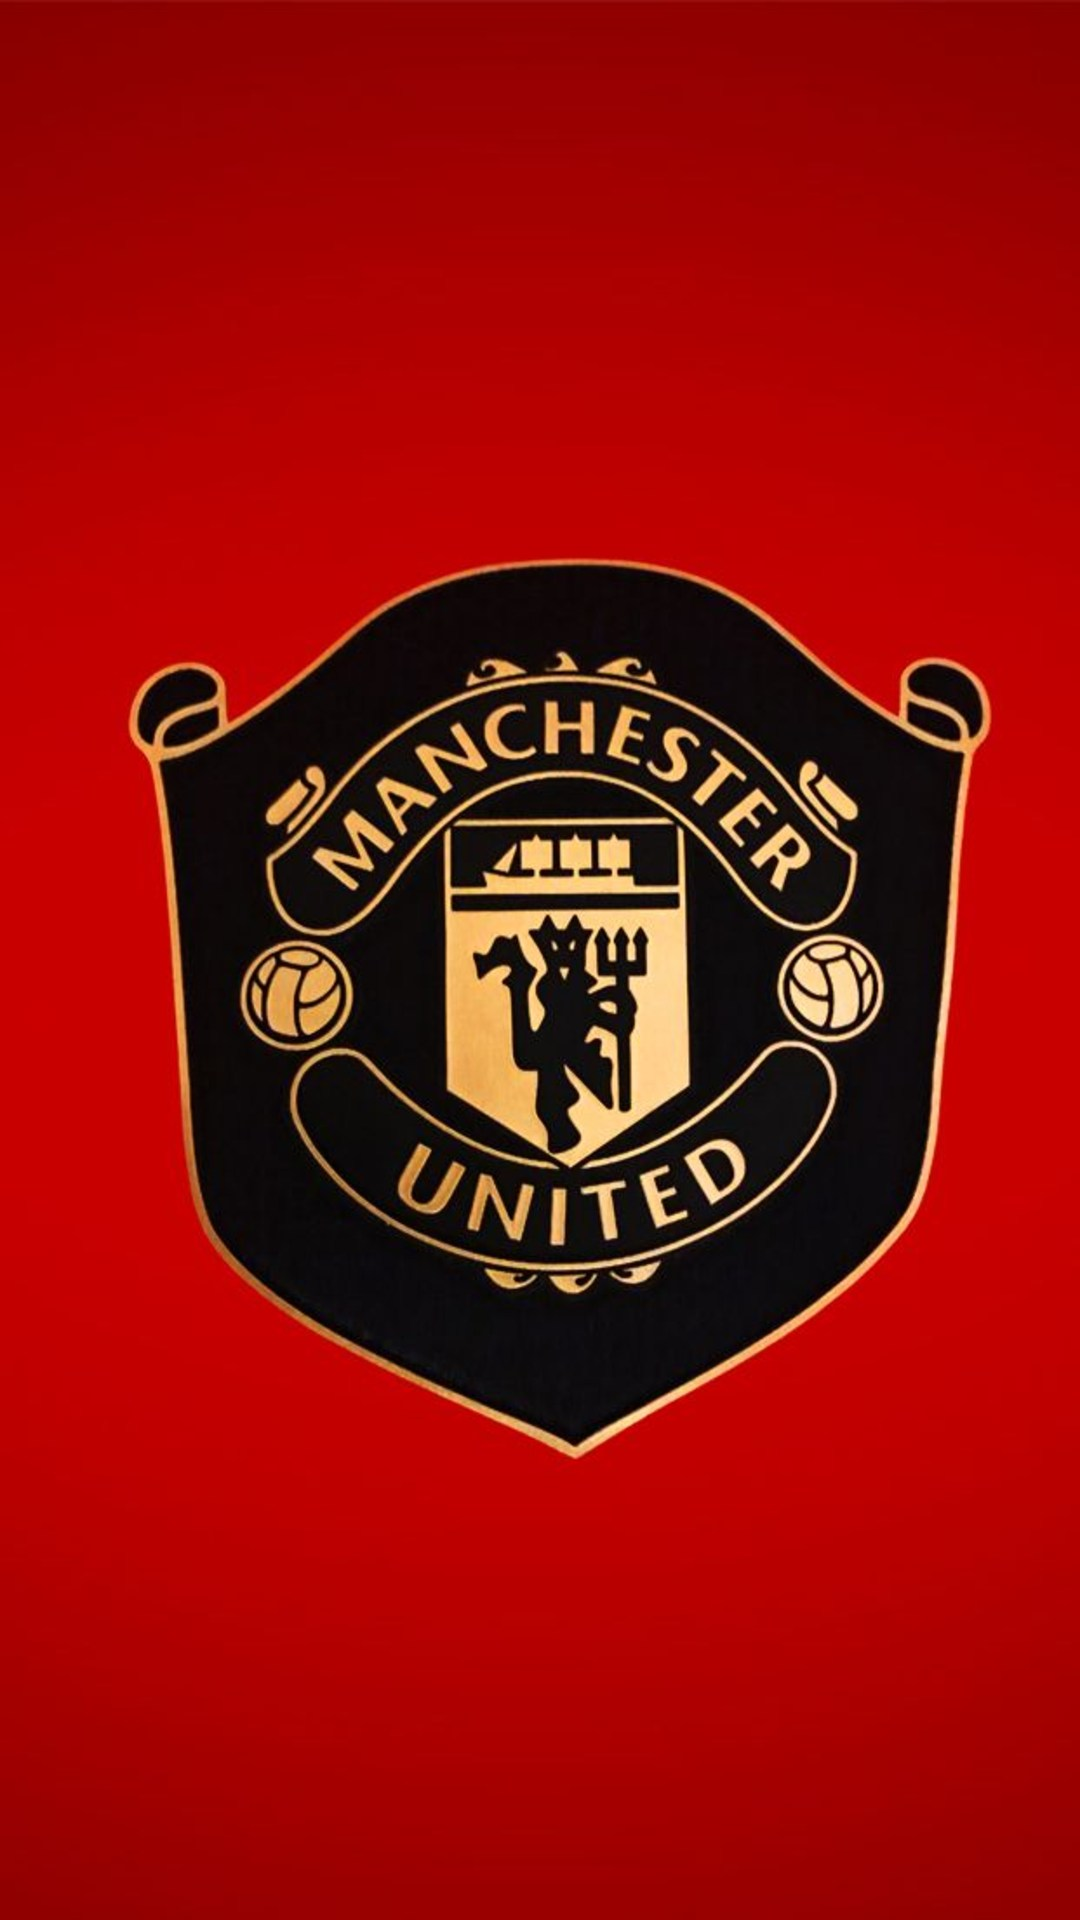 Man Utd Wallpaper Apple Manchester United Wallpaper Iphone 6 Posted By Ethan Tremblay